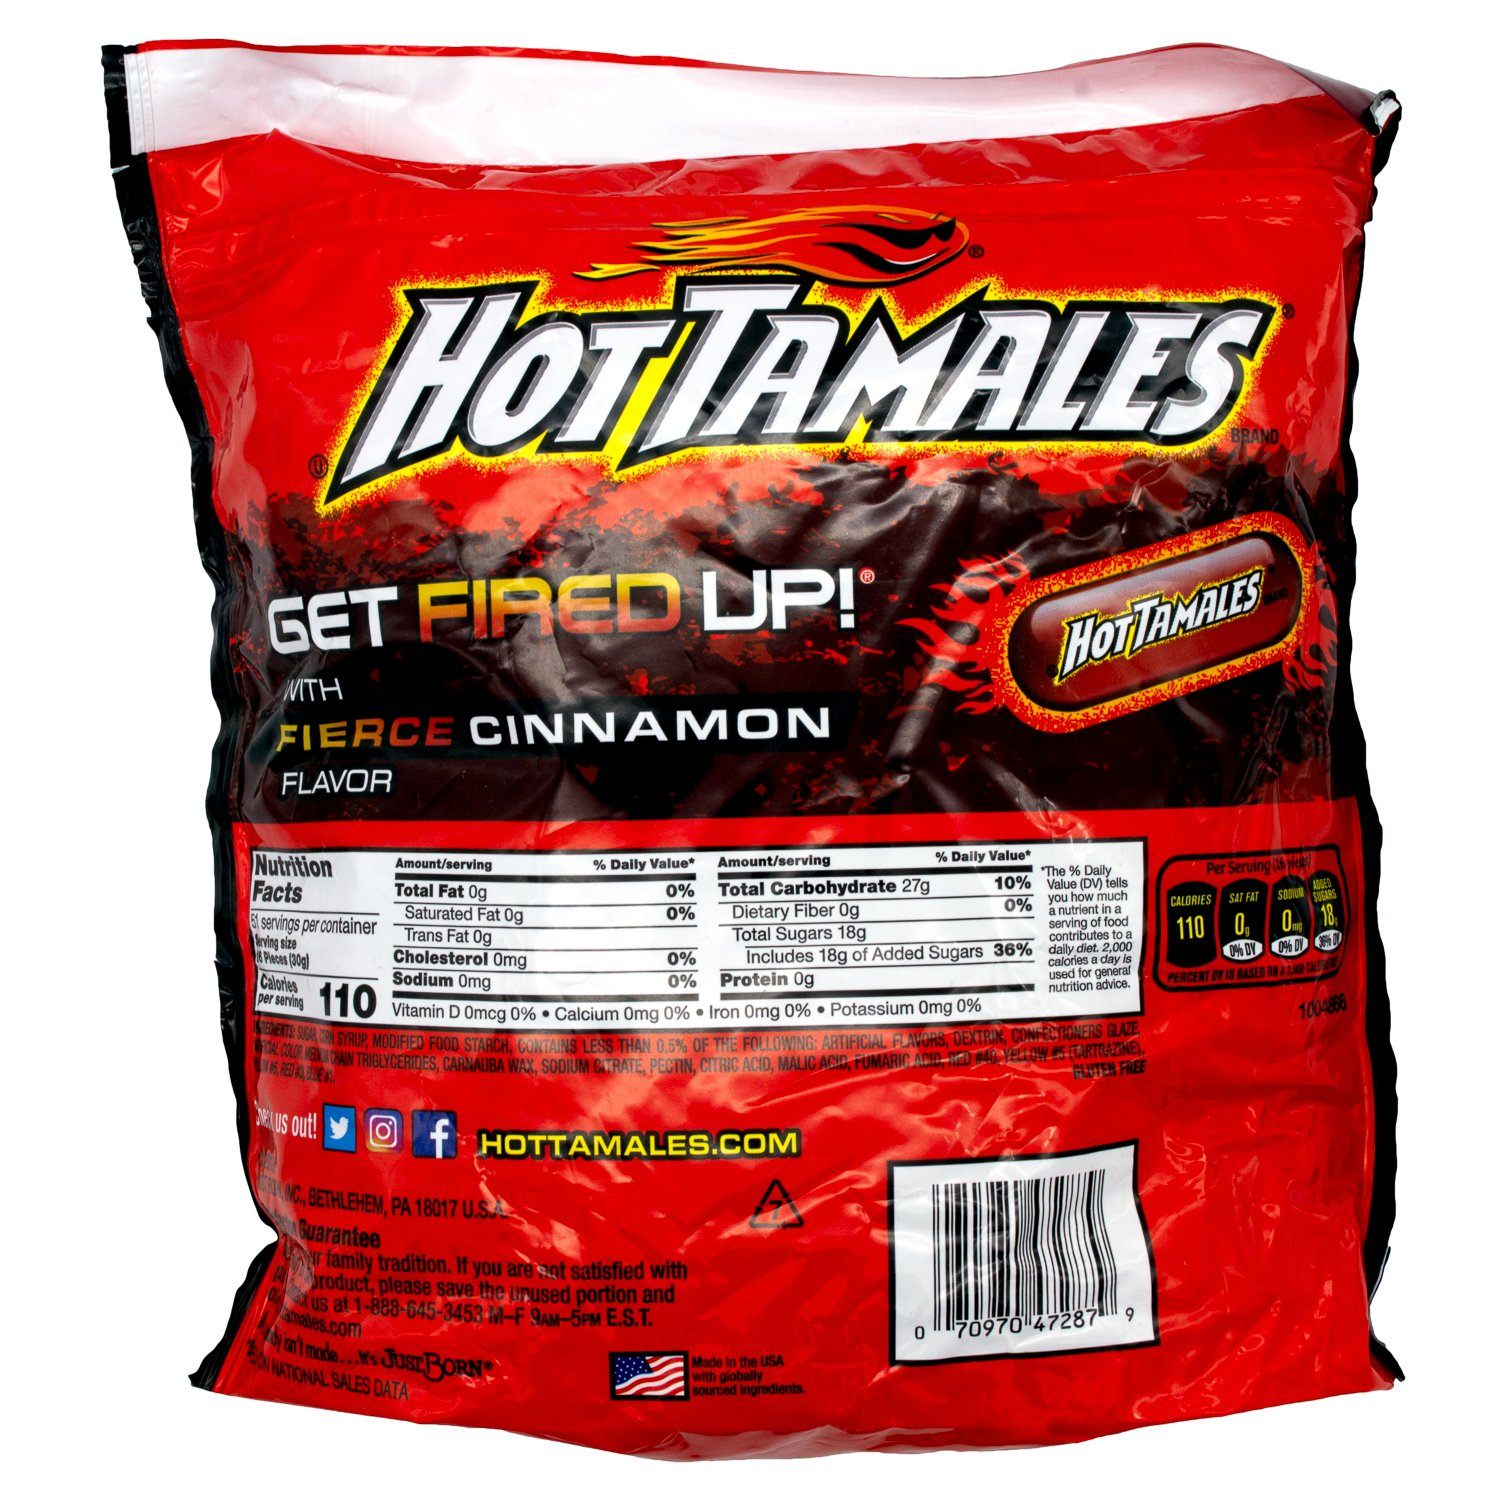 Hot Tamales Fierce Cinnamon Flavored Chewy Candies Hot Tamales